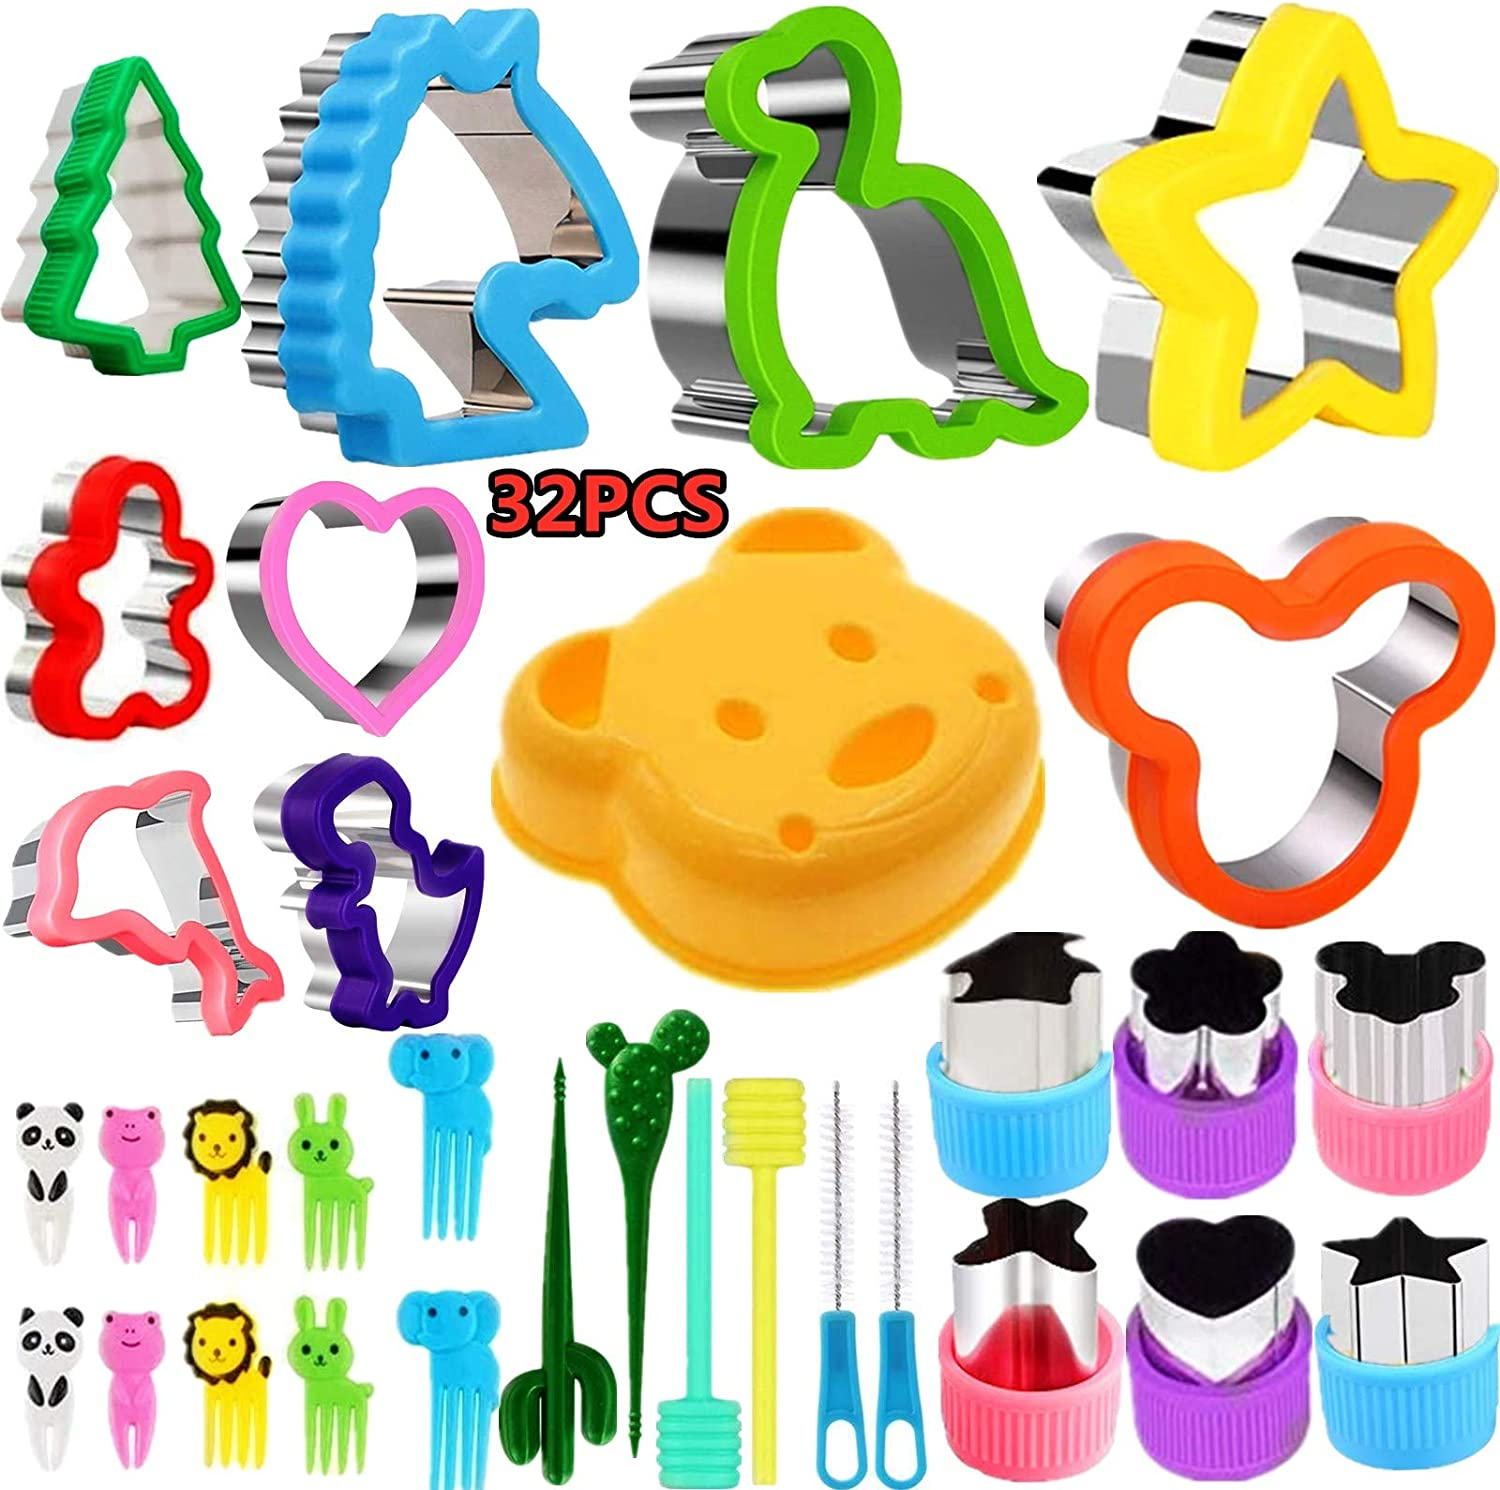 Cookie Cutter, Vegetable Shape & Fruit Cutter Set 32 PCS, Multi-Size Sandwich Fondant Cake, Biscuit Cutter Include Santa Claus,Christmas Tree,Mickey Mouse, Dinosaur, Star,for Children